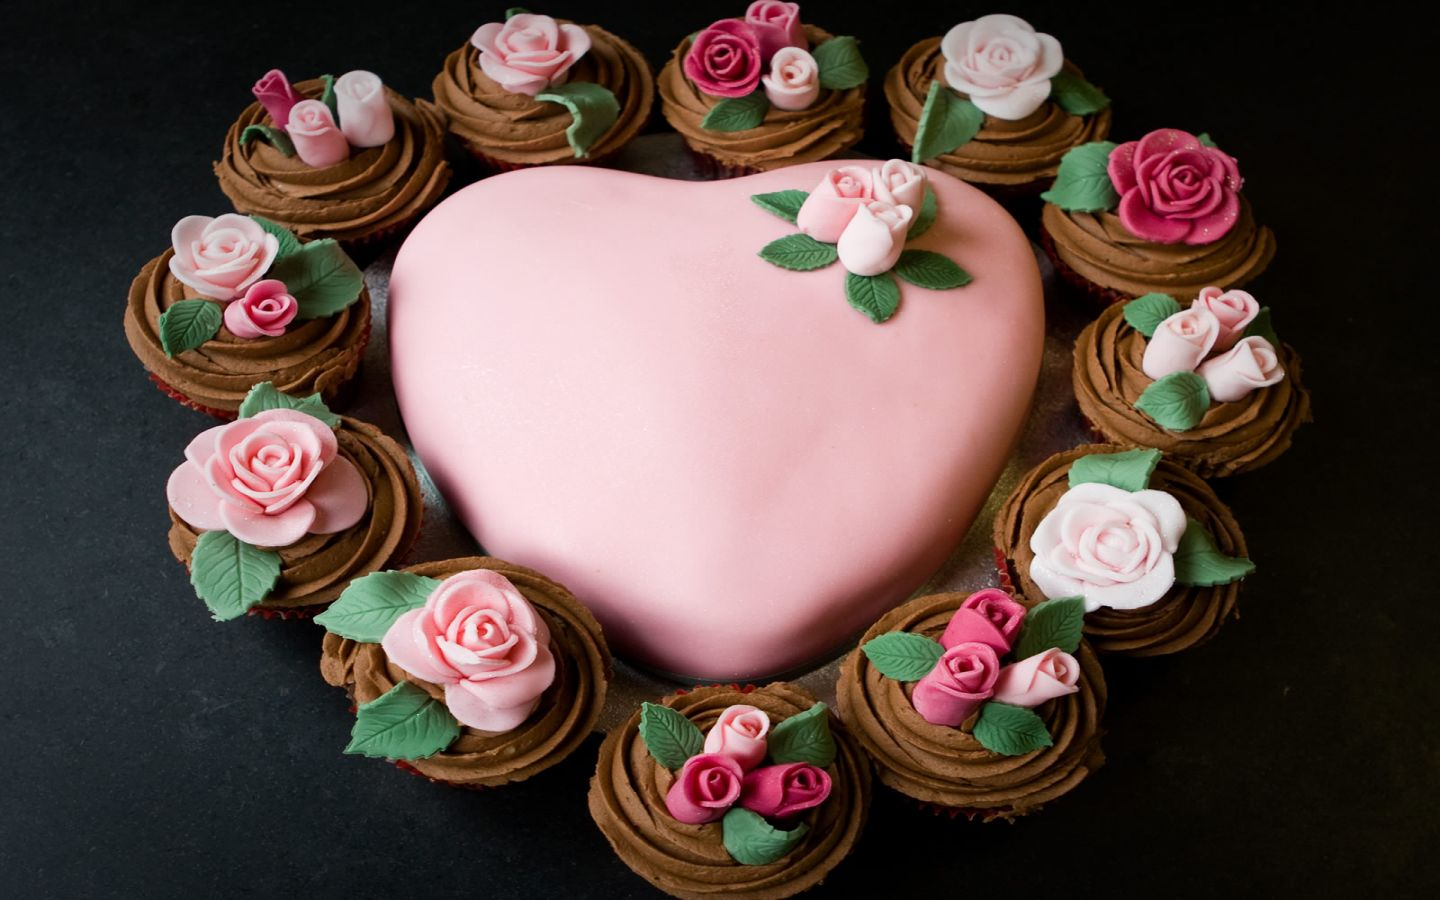 Love Heart Cake Wallpapers - 1440x900 - 151520